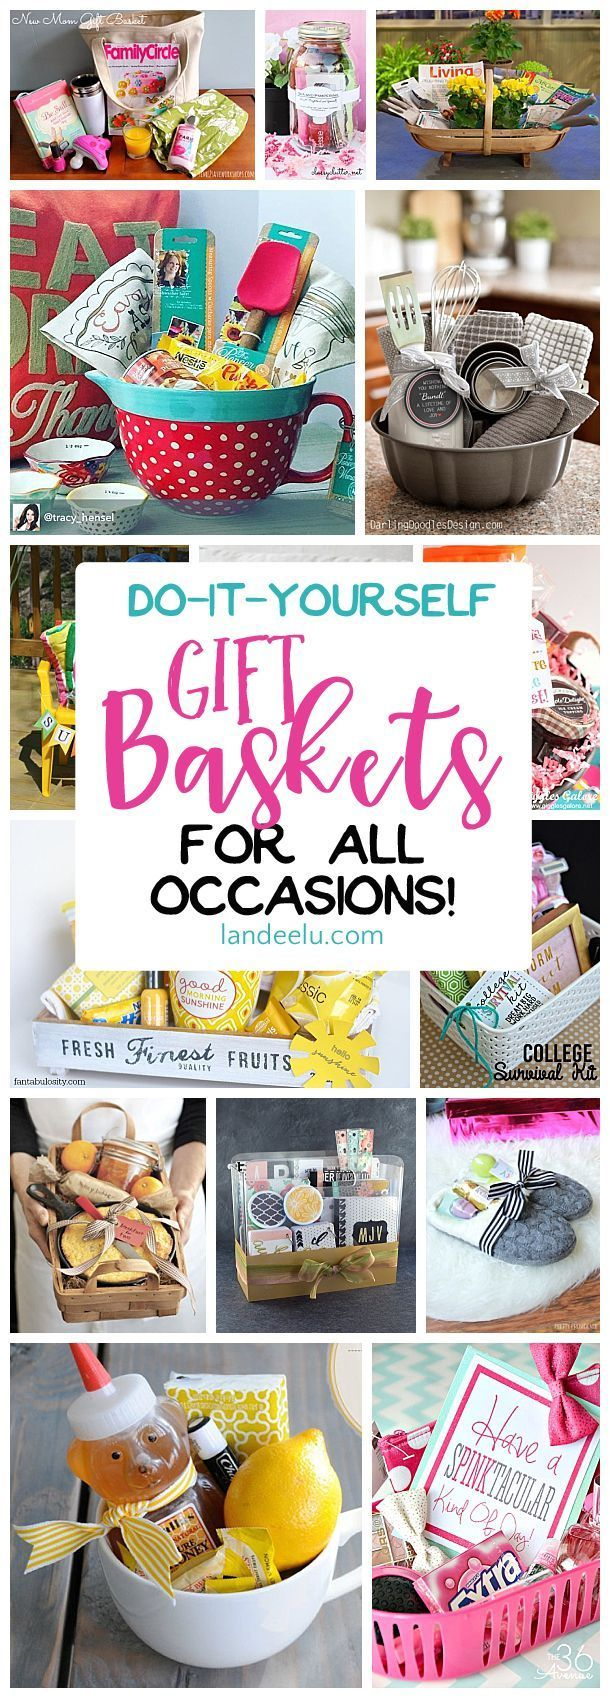 Diy gift basket ideas for her gift ideas diy gifts put together a gift basket for any occasion and make someone s day easy solutioingenieria Gallery